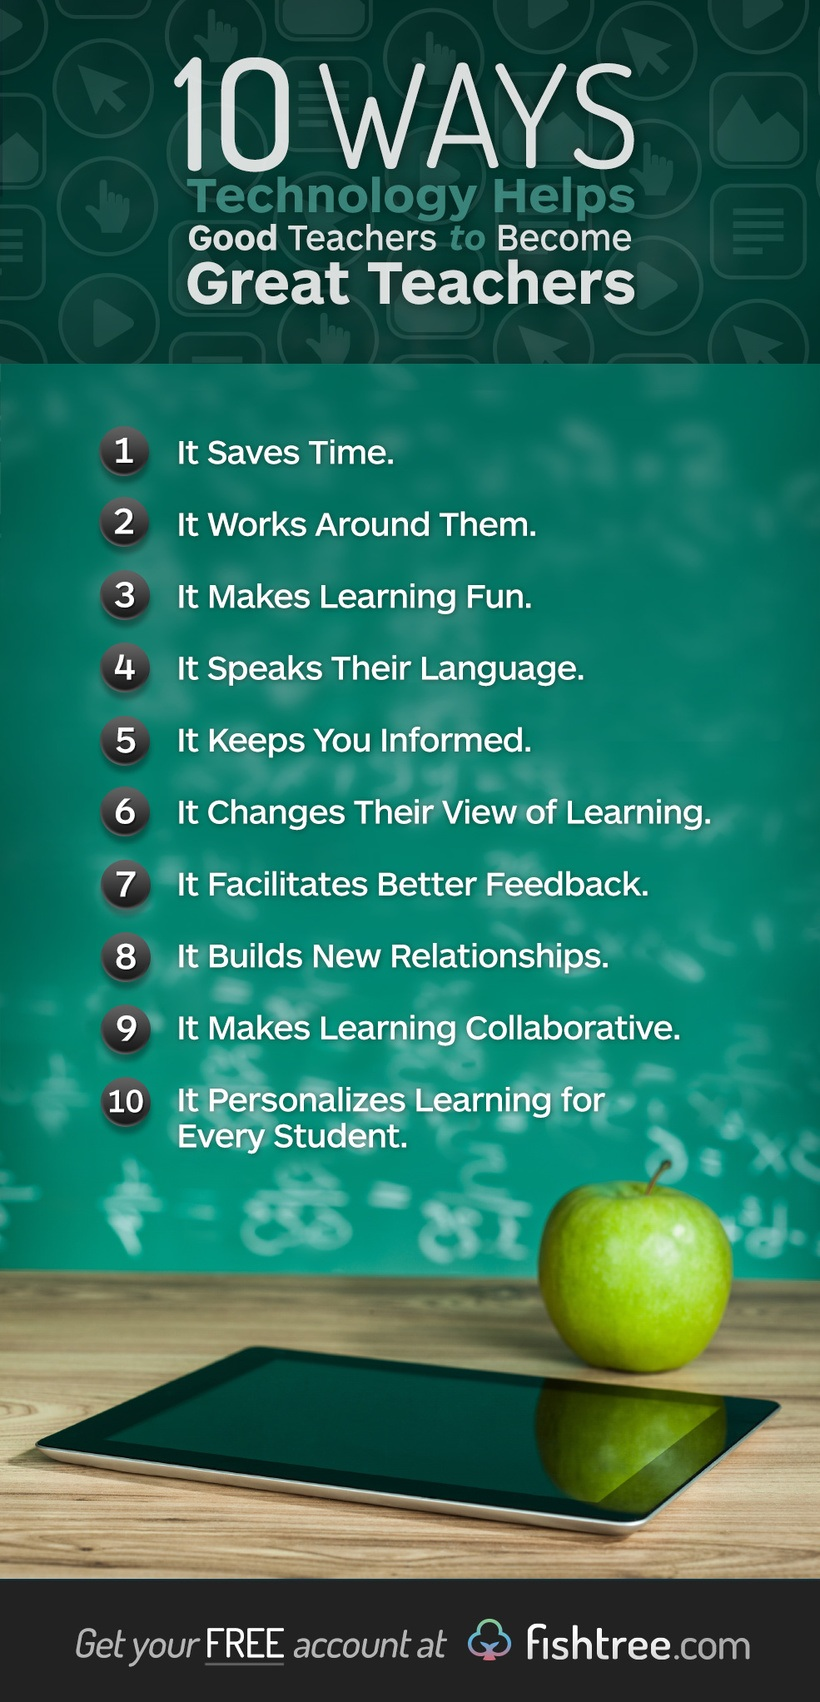 10 Ways Technology Helps Good Teachers To Become Great